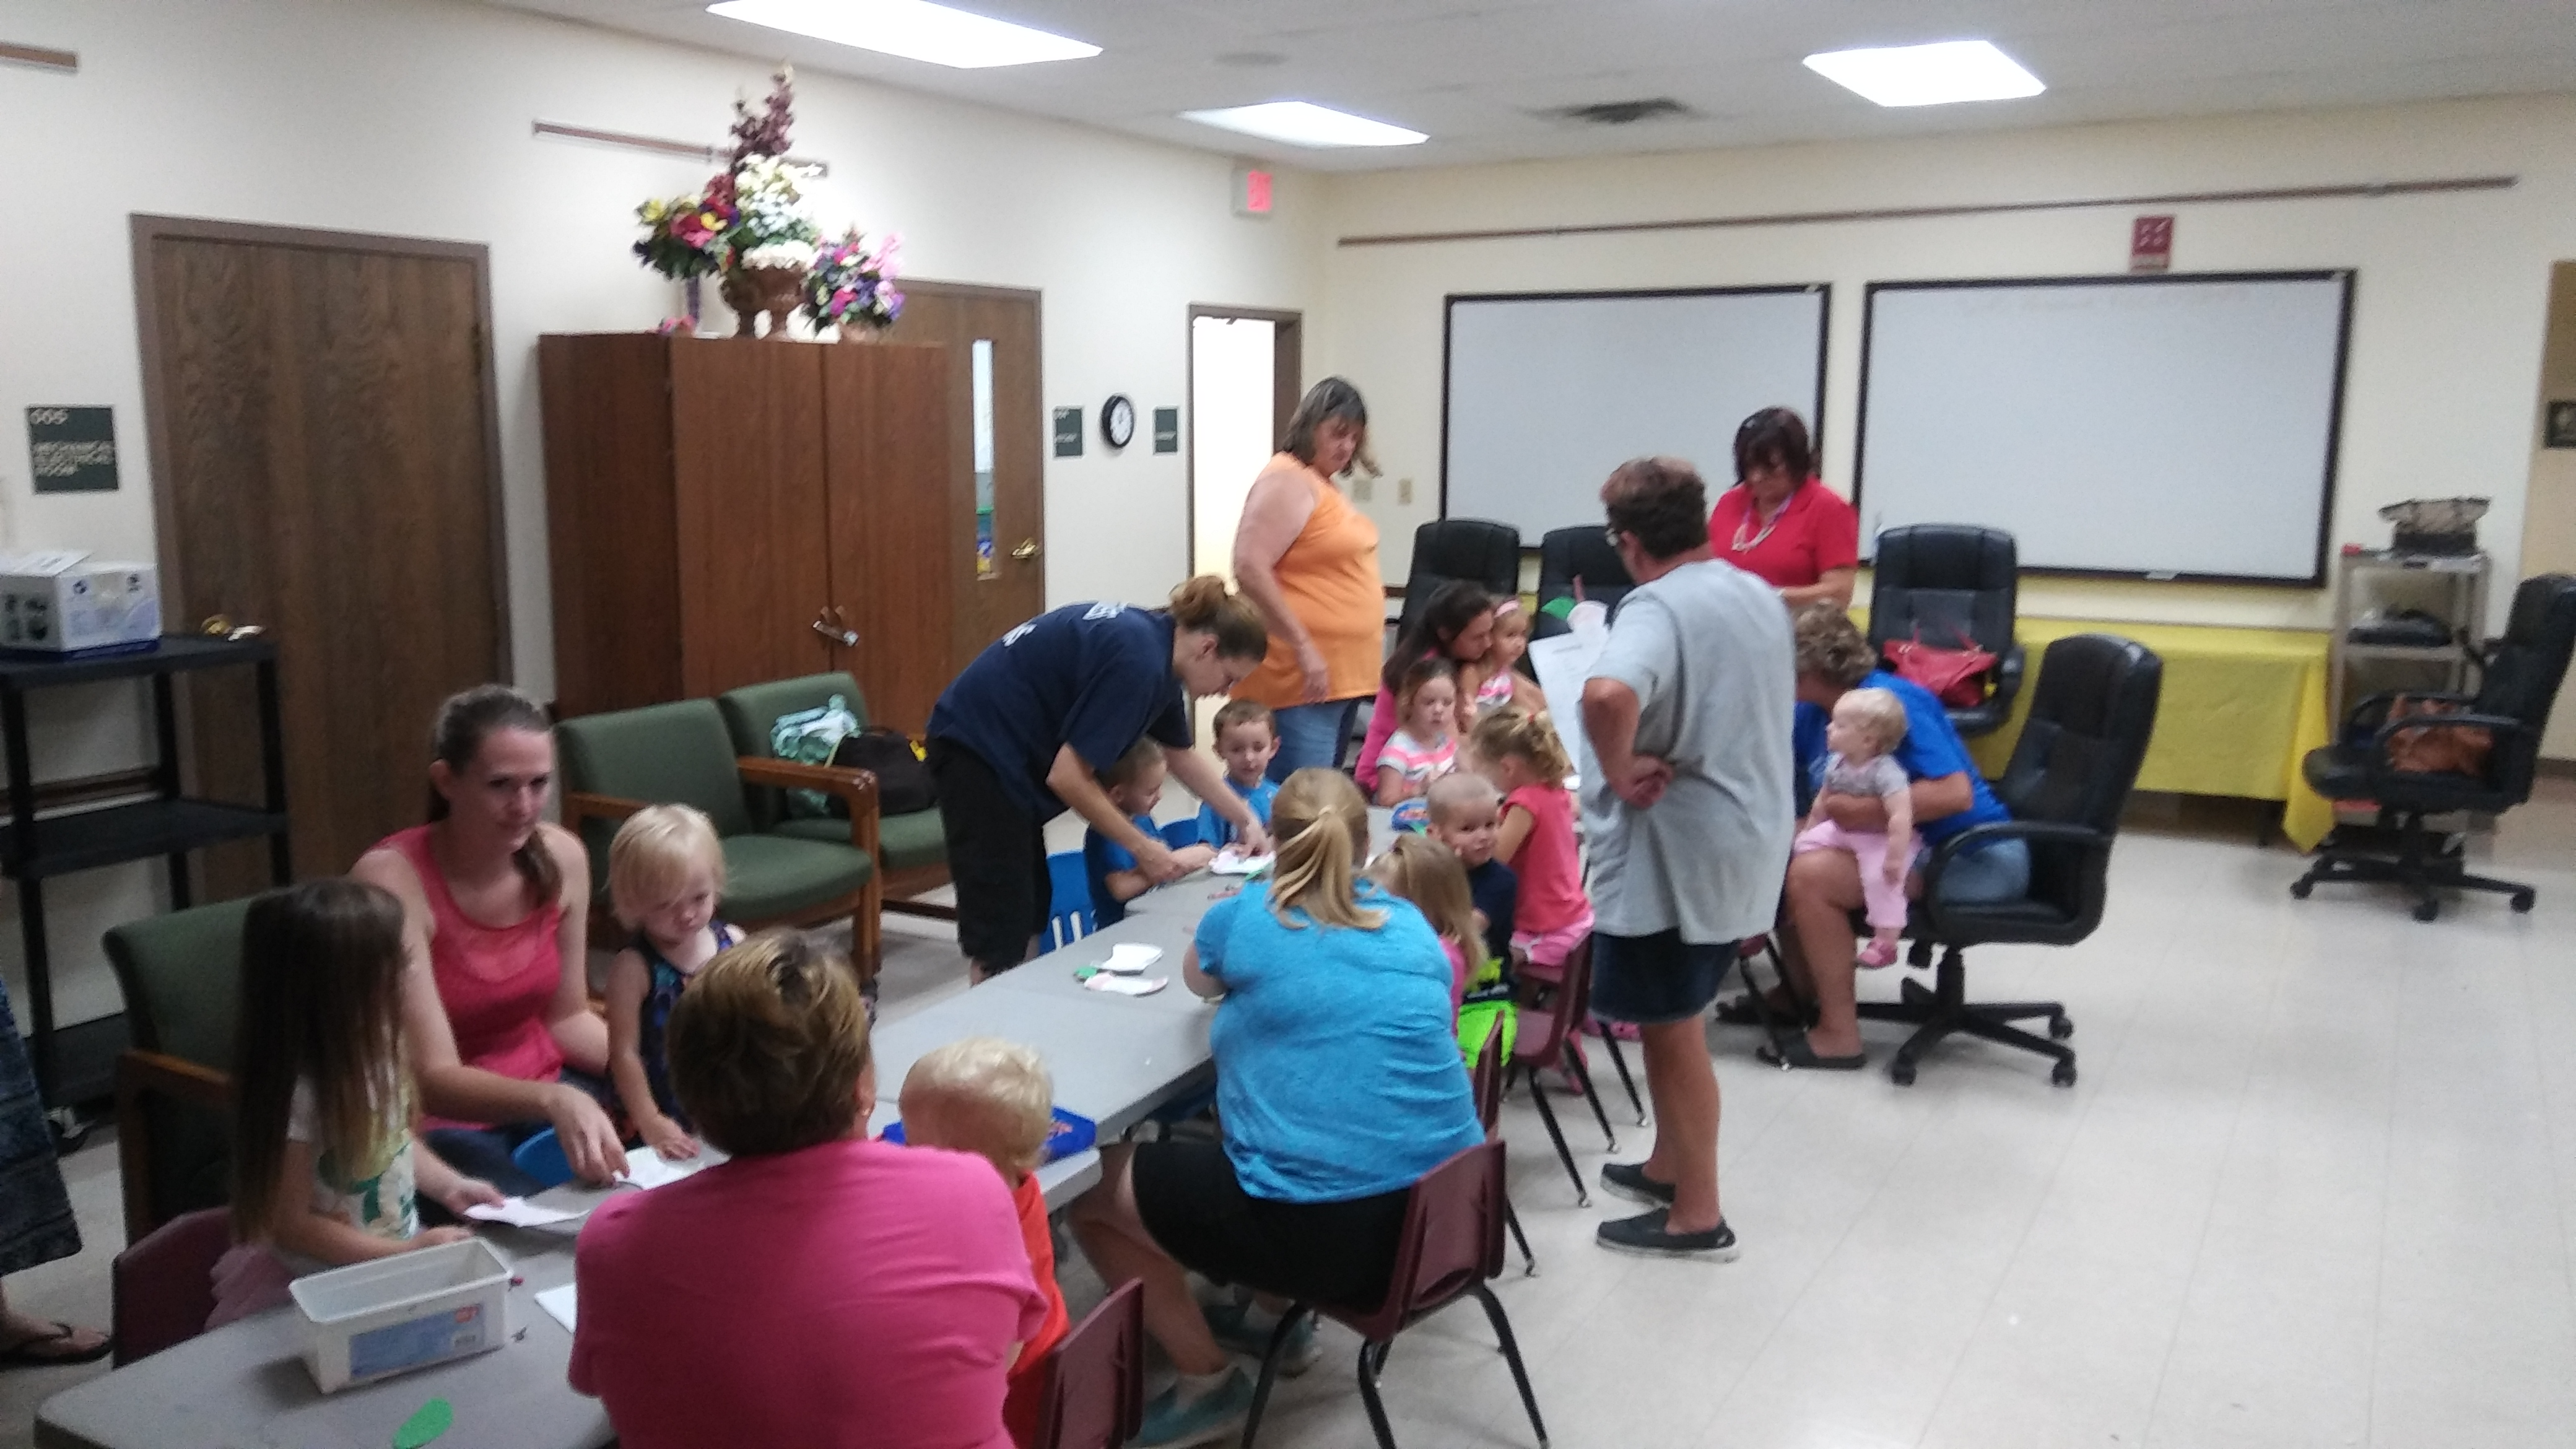 Storytime proves to remain a popular destination for our young families, with 13 children this week and 16 last week.